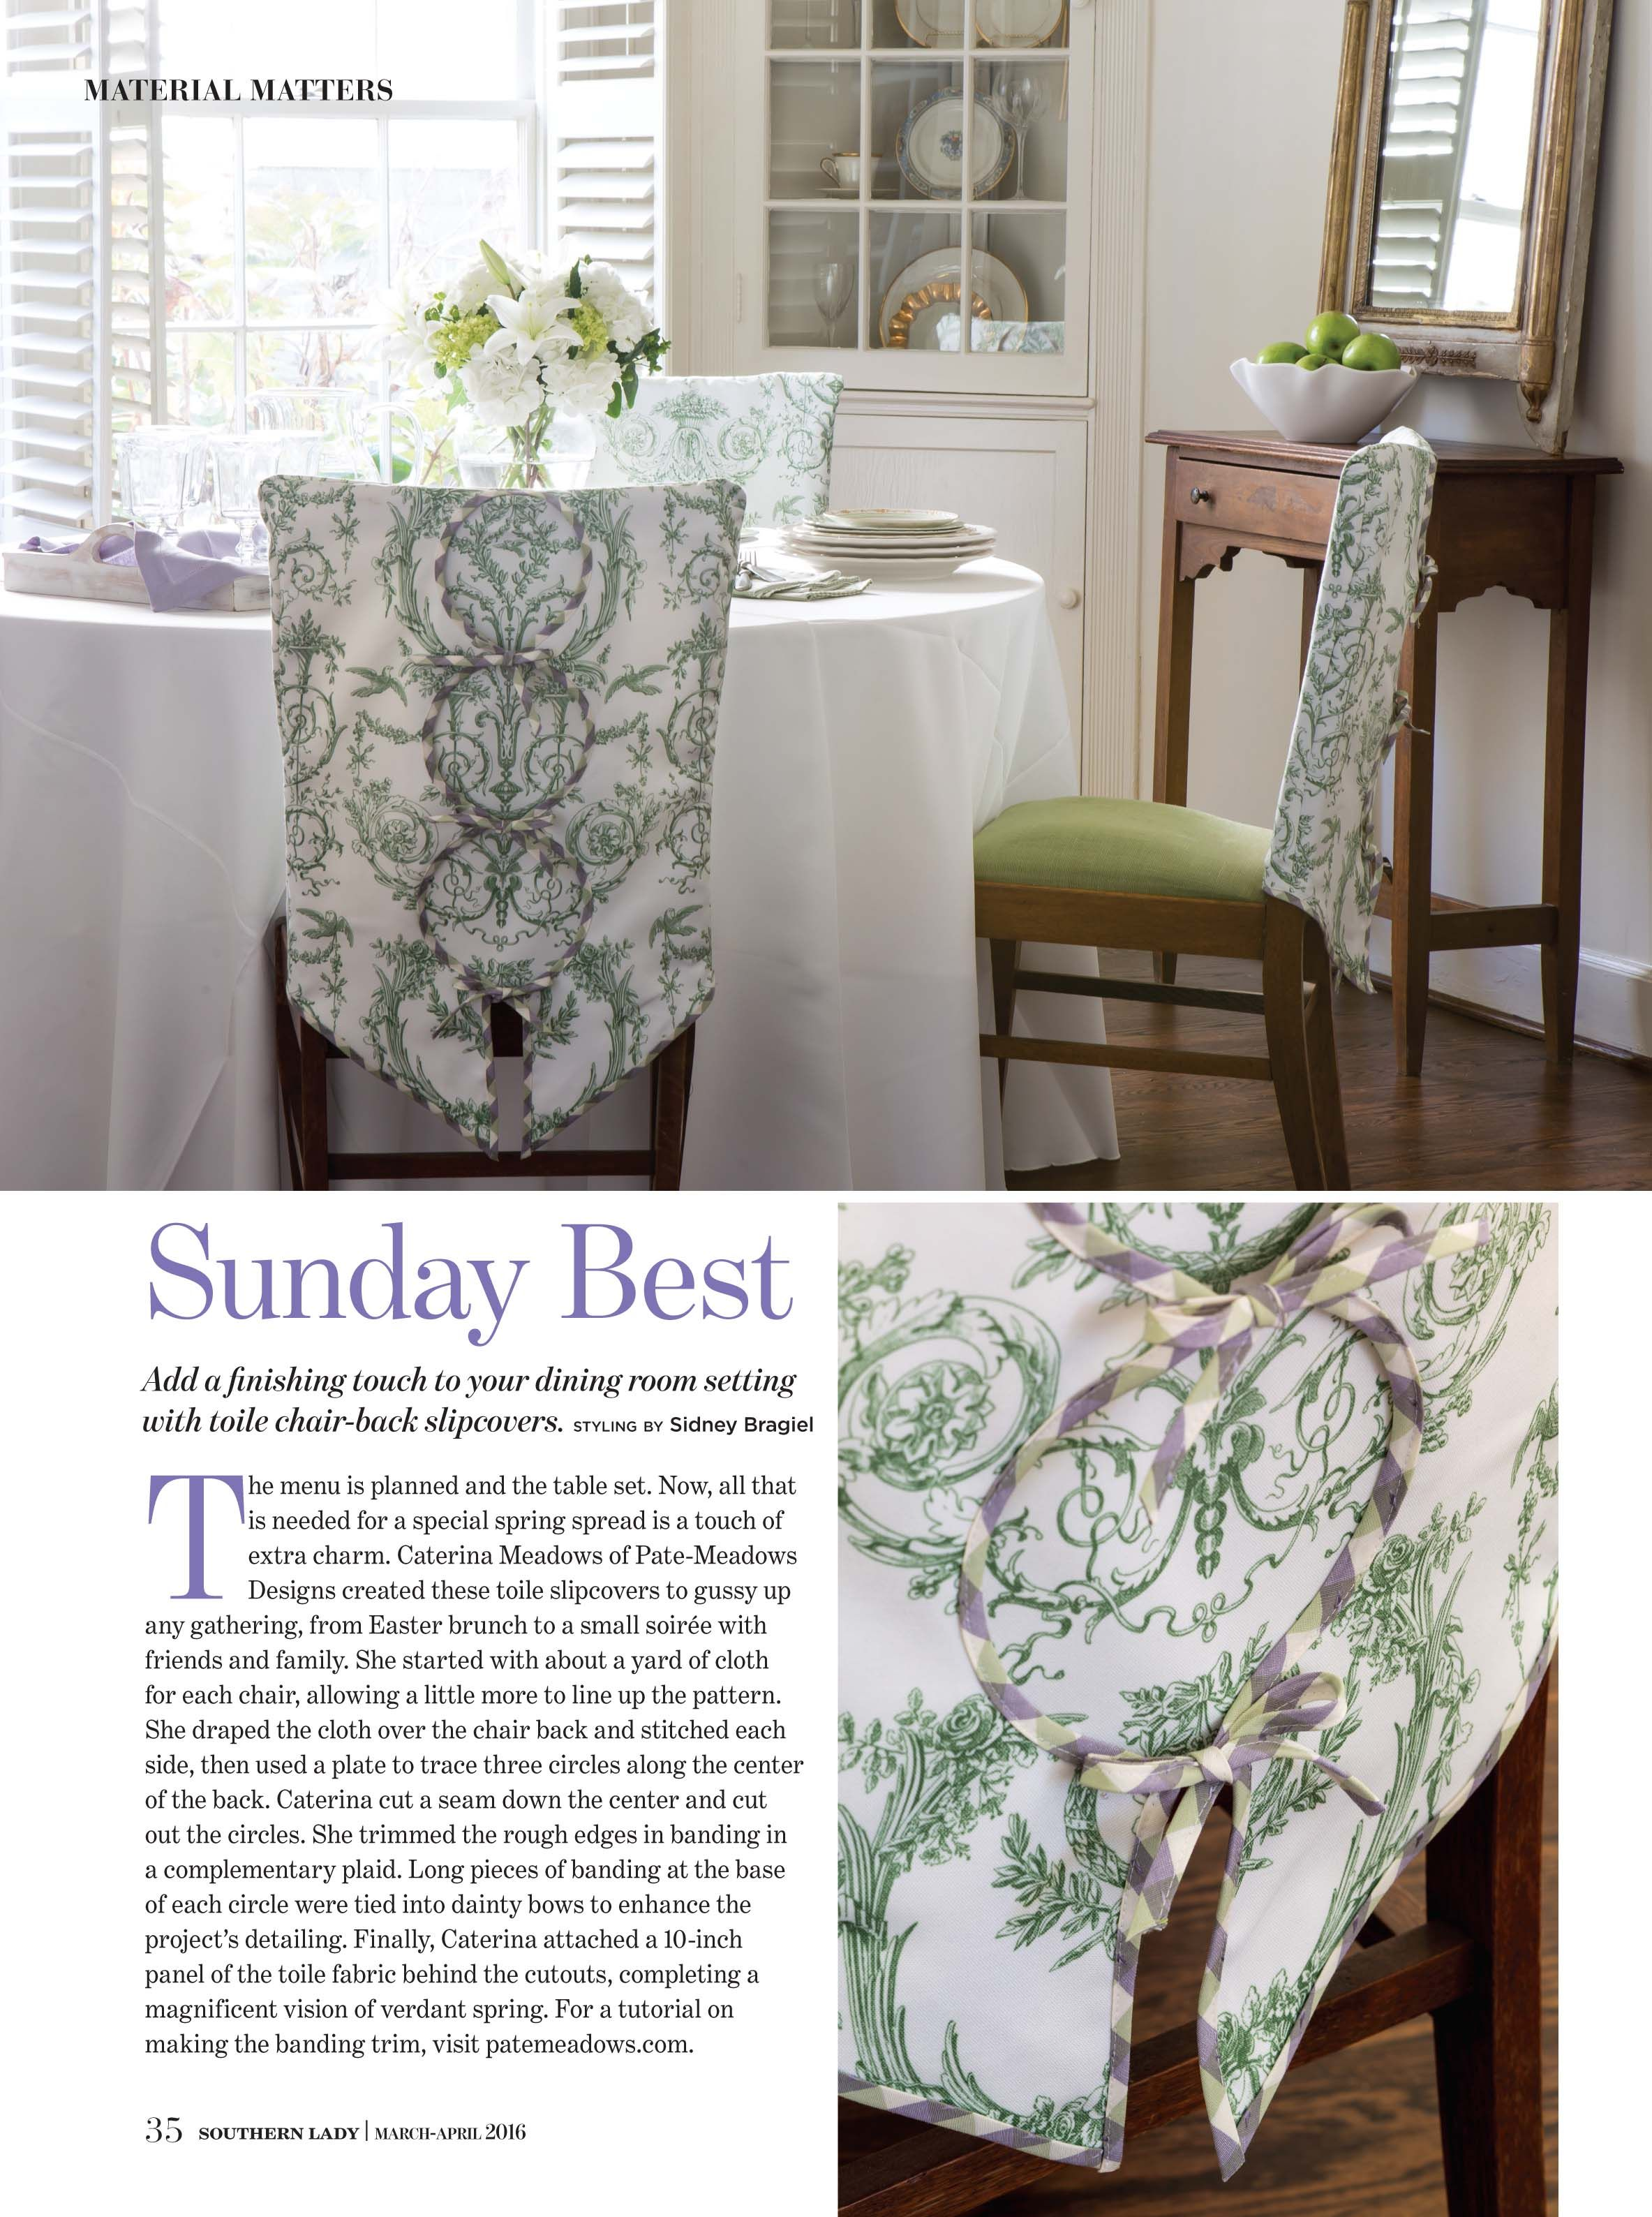 Capetian Toile Fabric In Basil Green Designed By Lilyoake